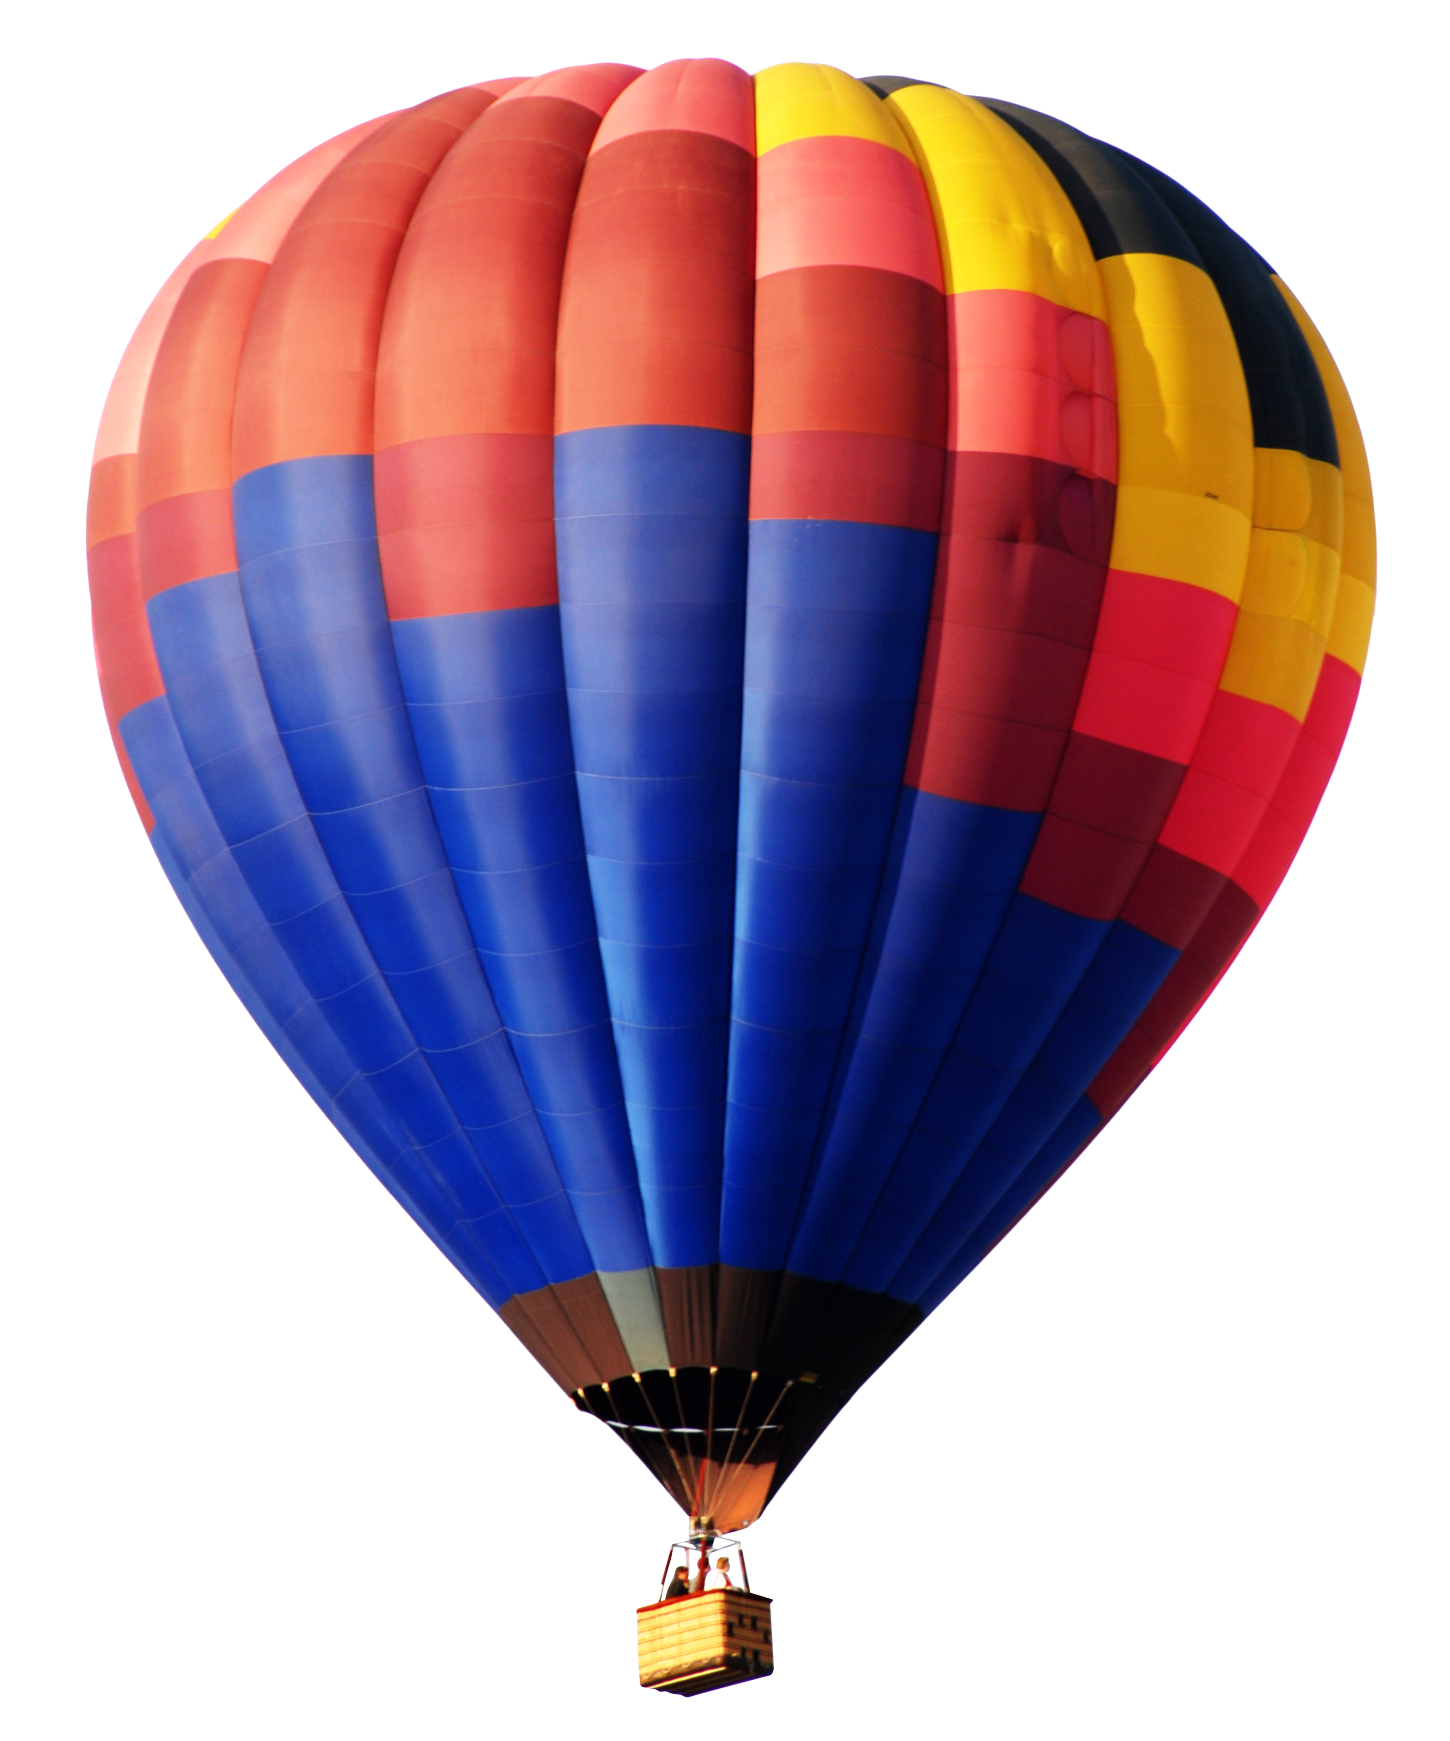 Hot air balloon png transparent background. Image purepng free cc